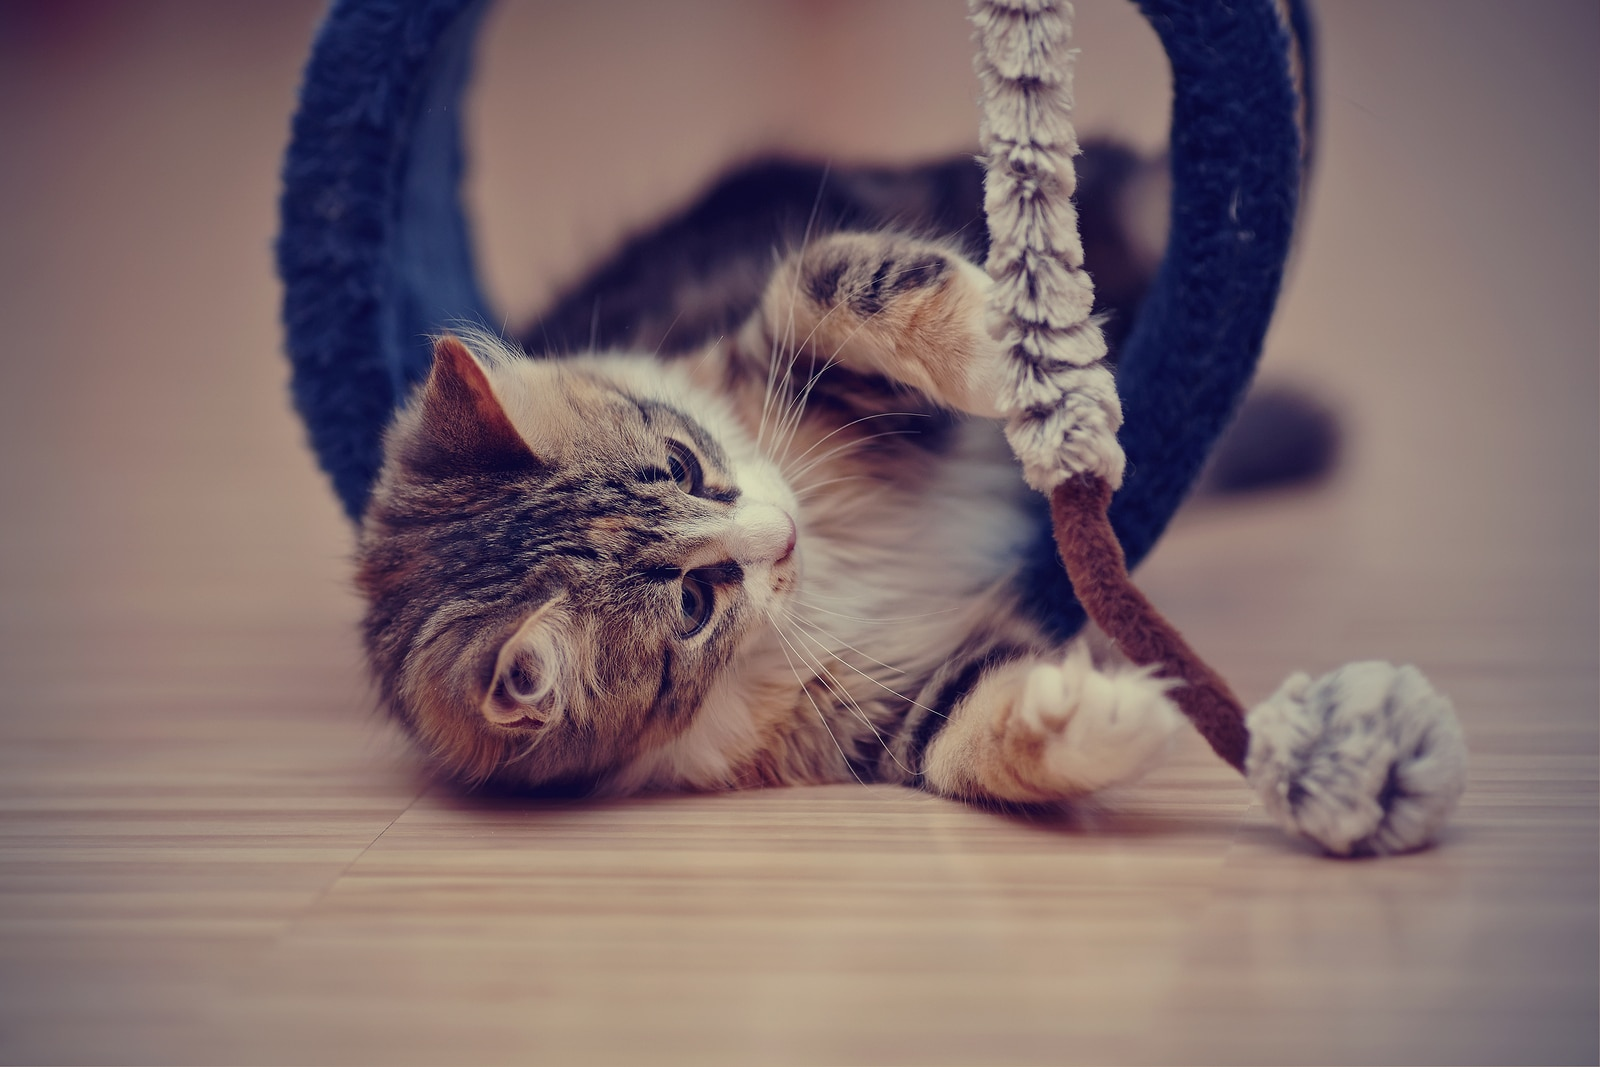 A small tabby kitten lies on ground pawing at fuzzy cat toy.